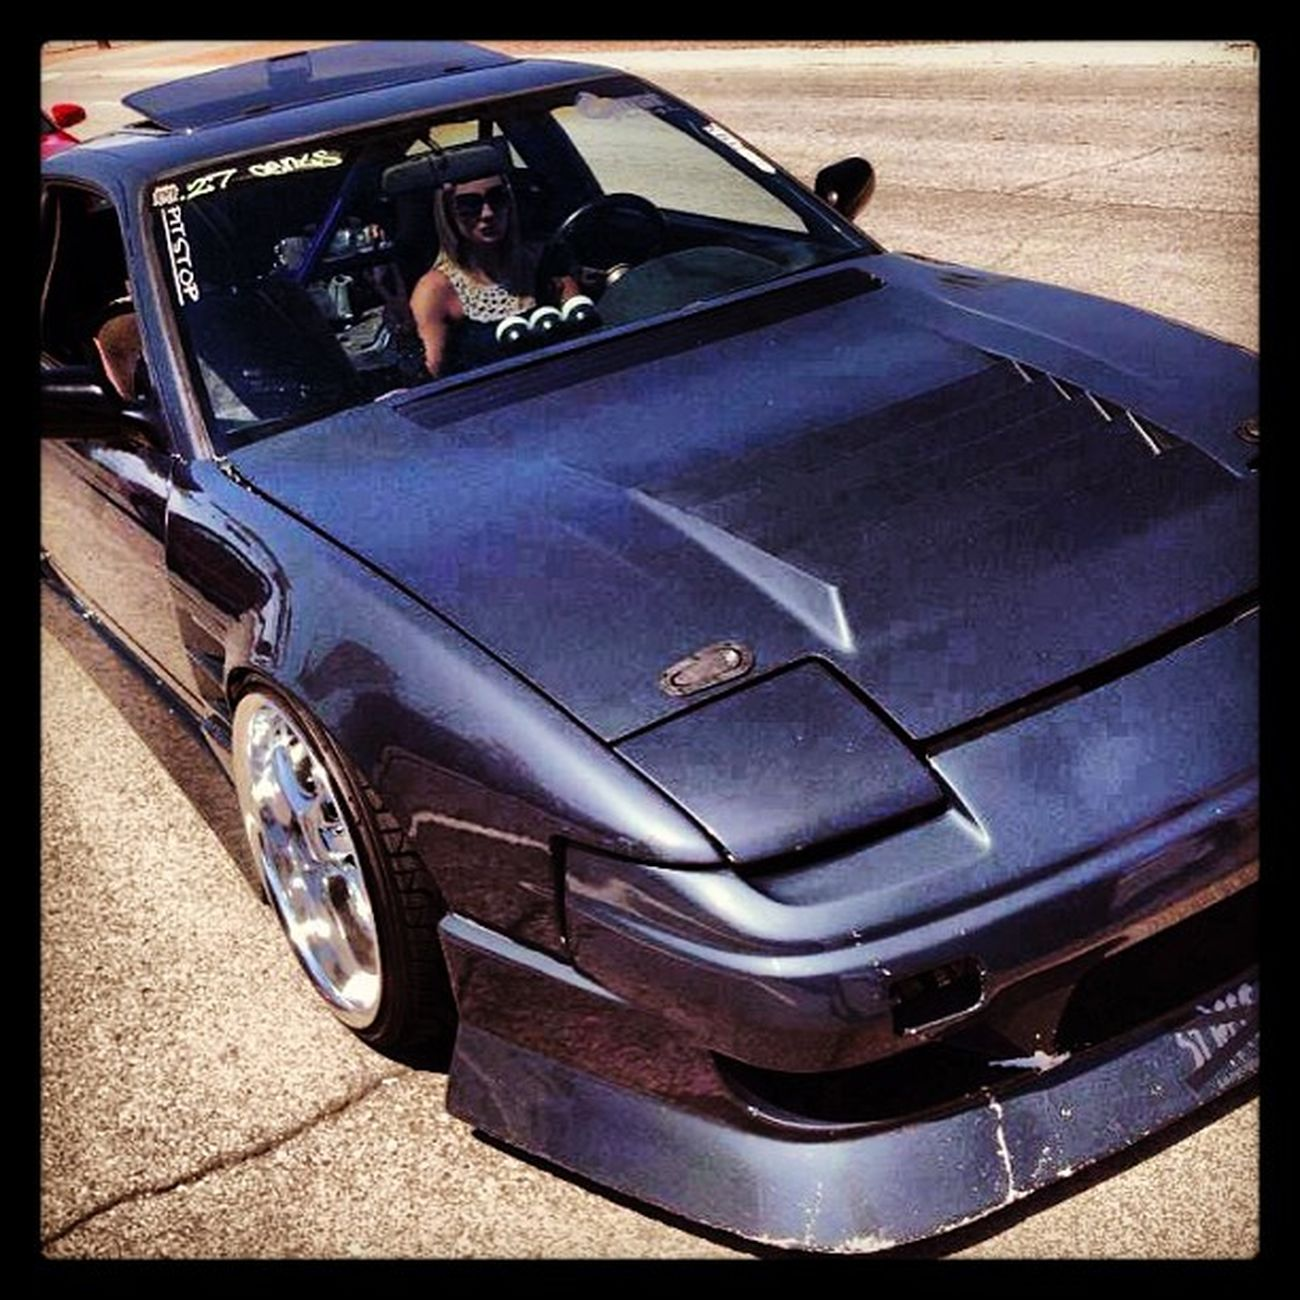 I want a girl that drives stick Lowlife Low &slow S13 180sx nissan nismo girls drift illest